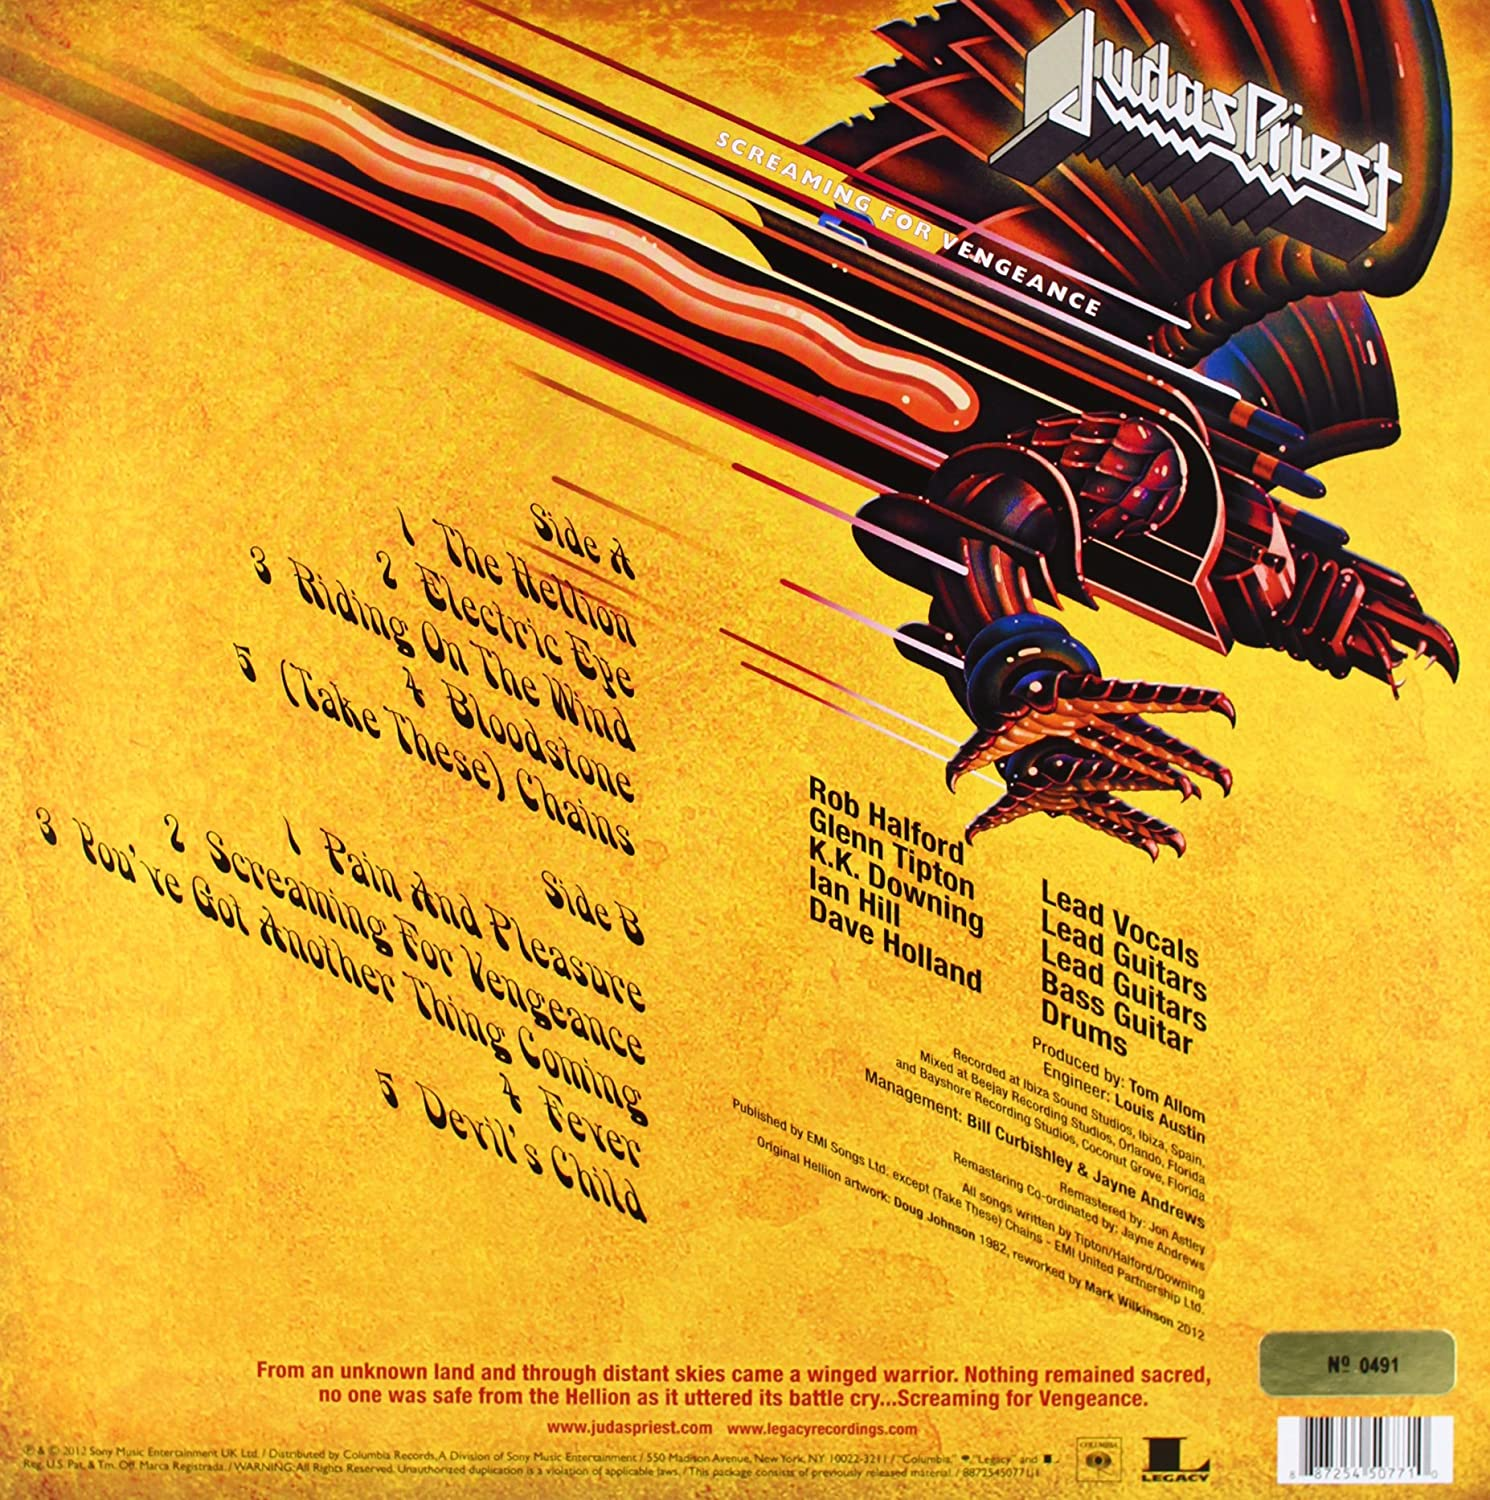 Judas Priest Screaming For Vengeance Special 30th Anniversary